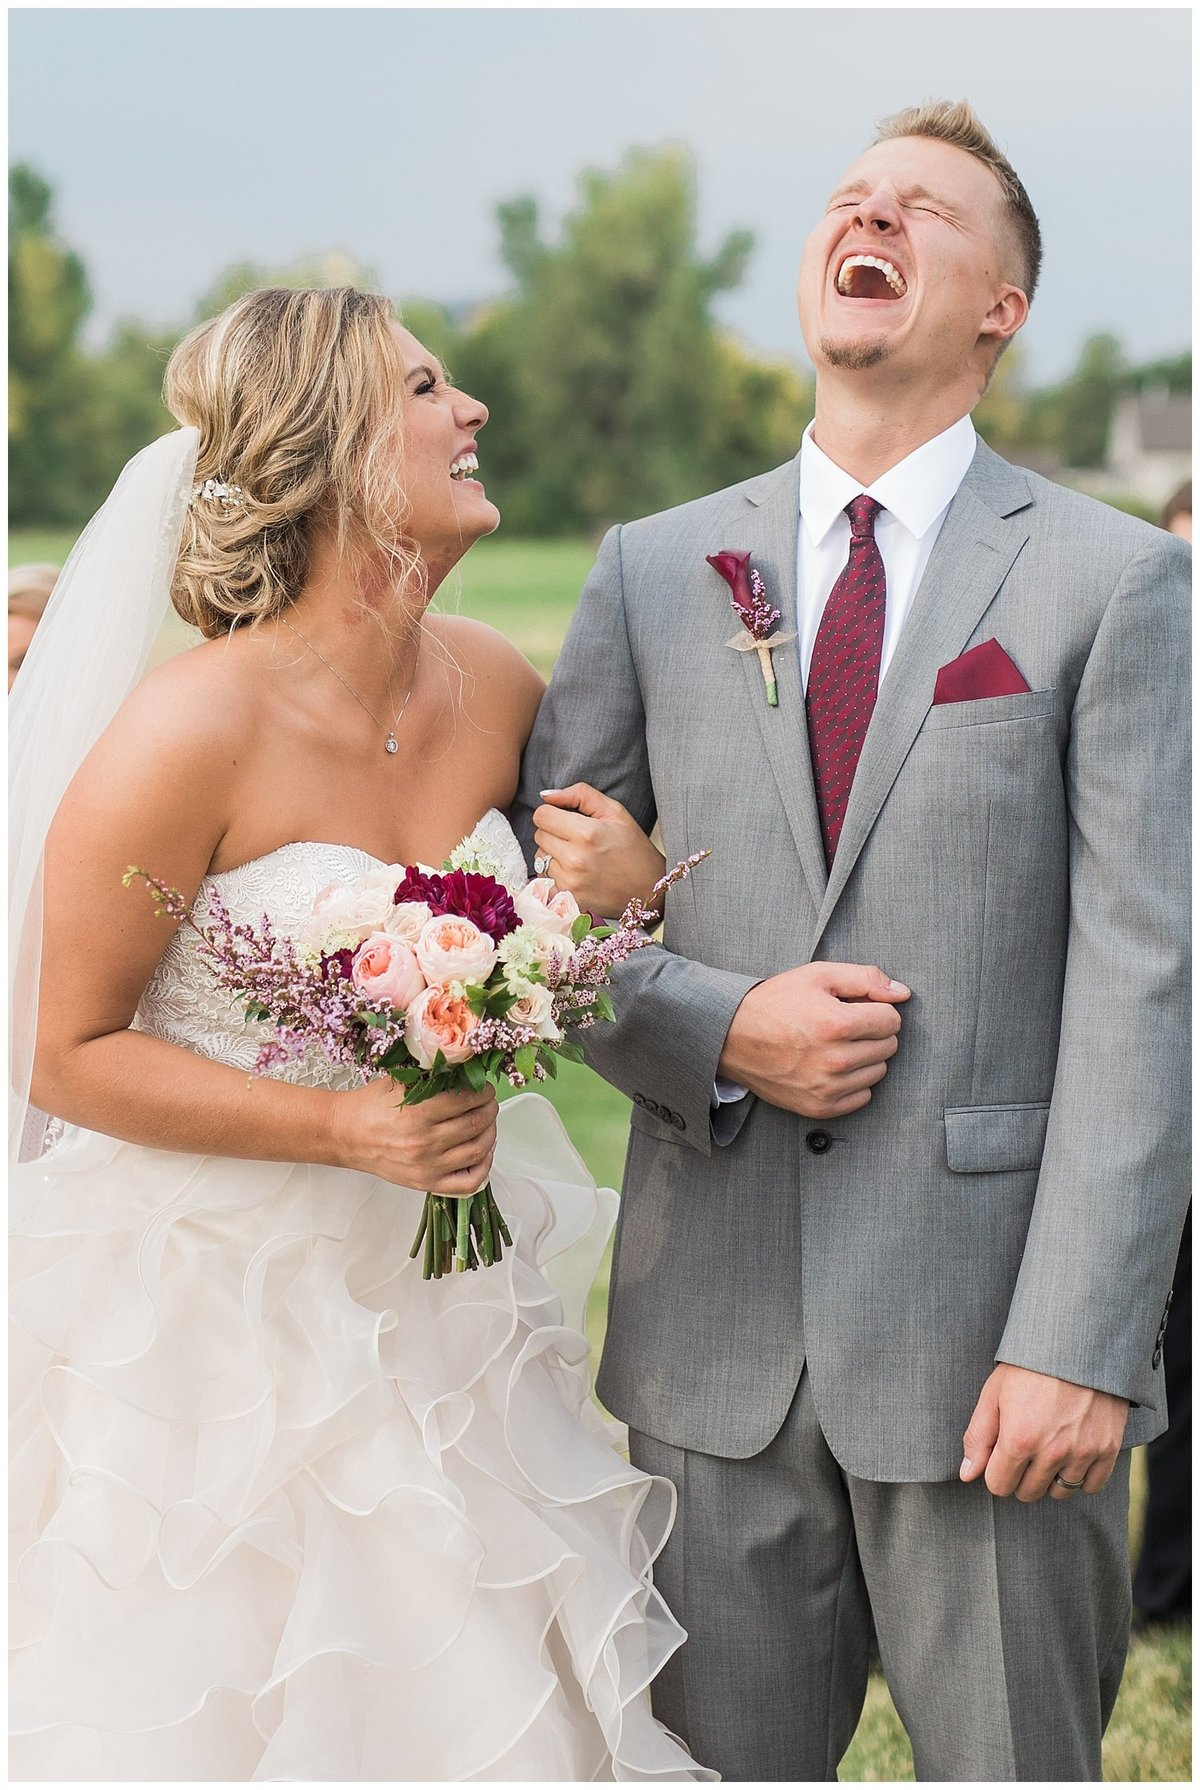 Romantic Wedding - South Dakota Wedding - Midwest Wedding_0309